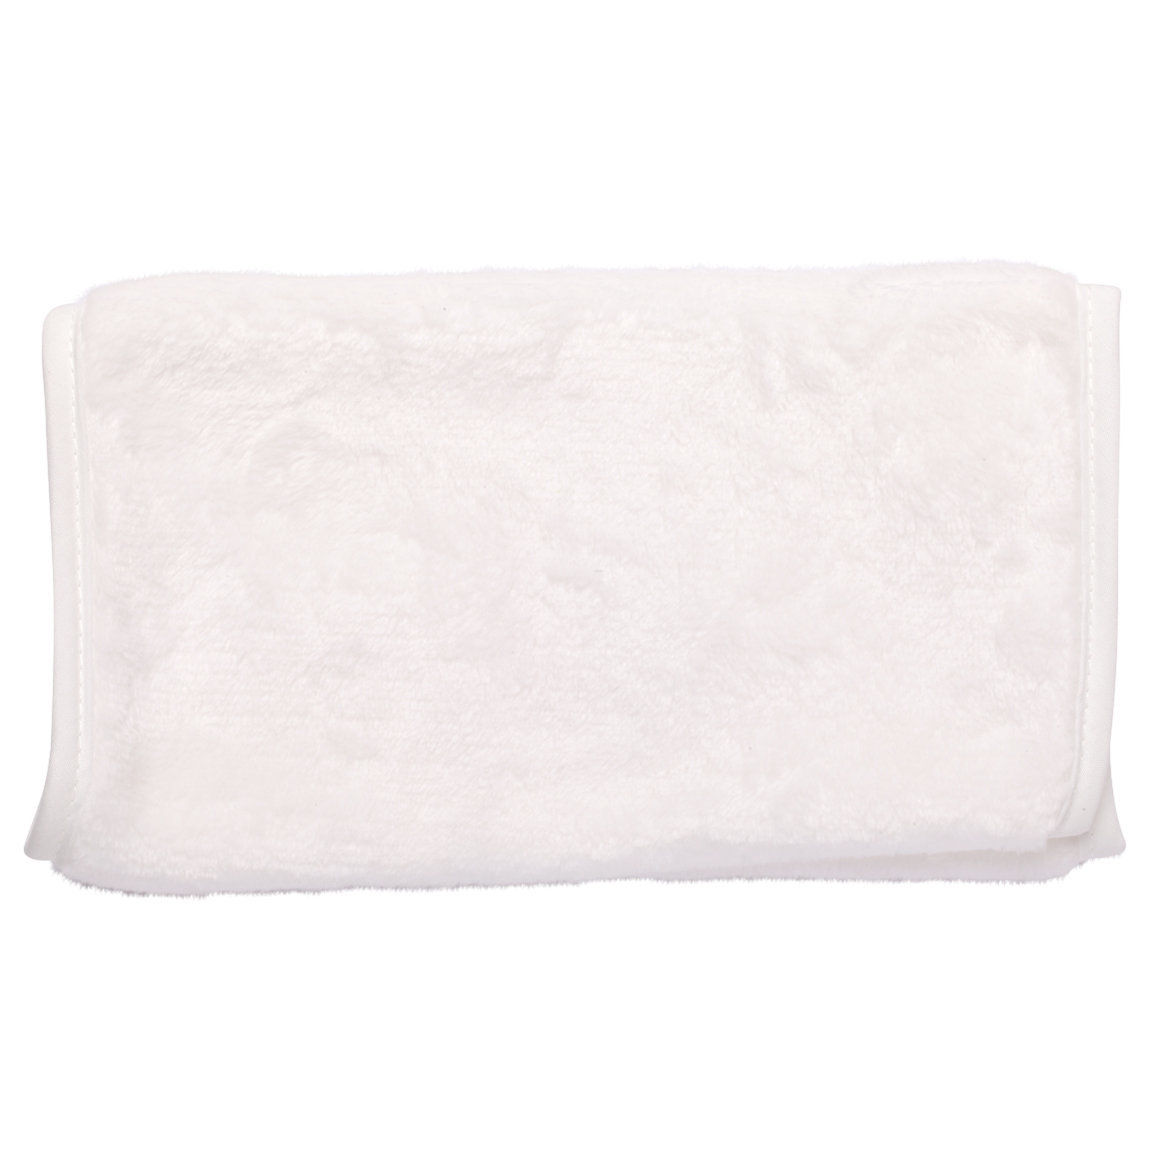 Jouer Cosmetics Microfiber Towel alternative view 1 - product swatch.